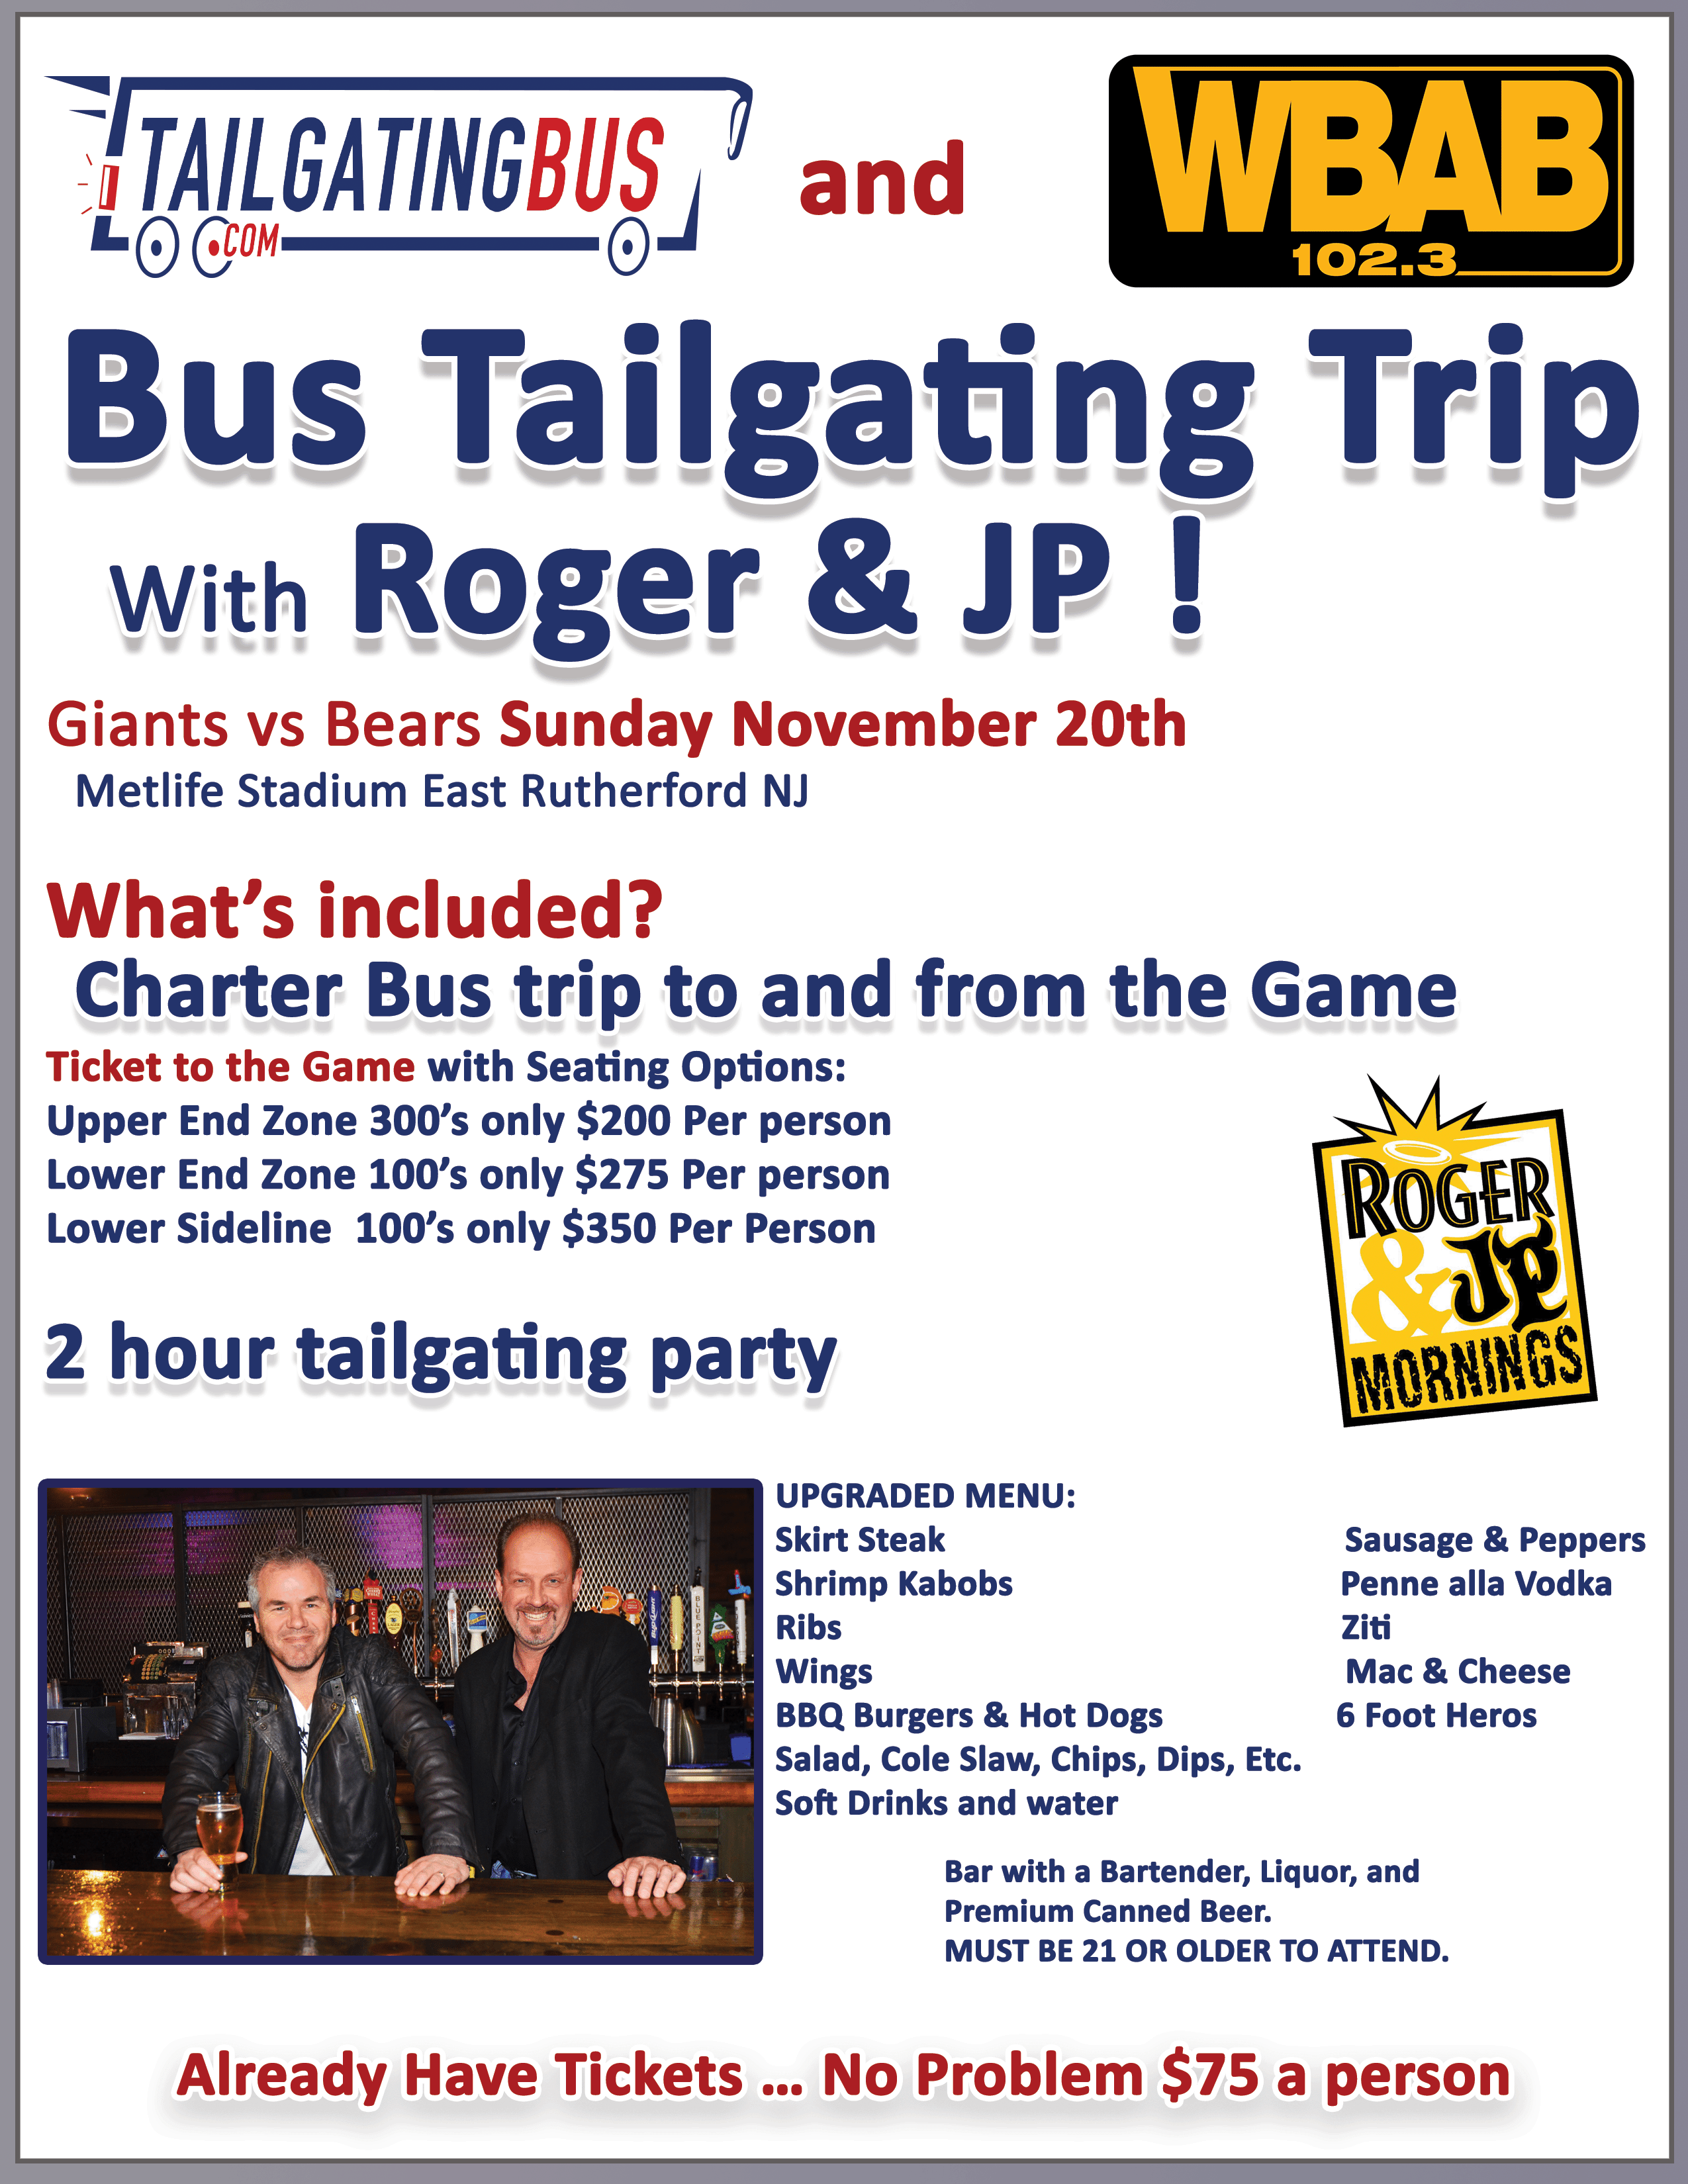 WBAB 102.3 tailgating bus trip with roger & JP